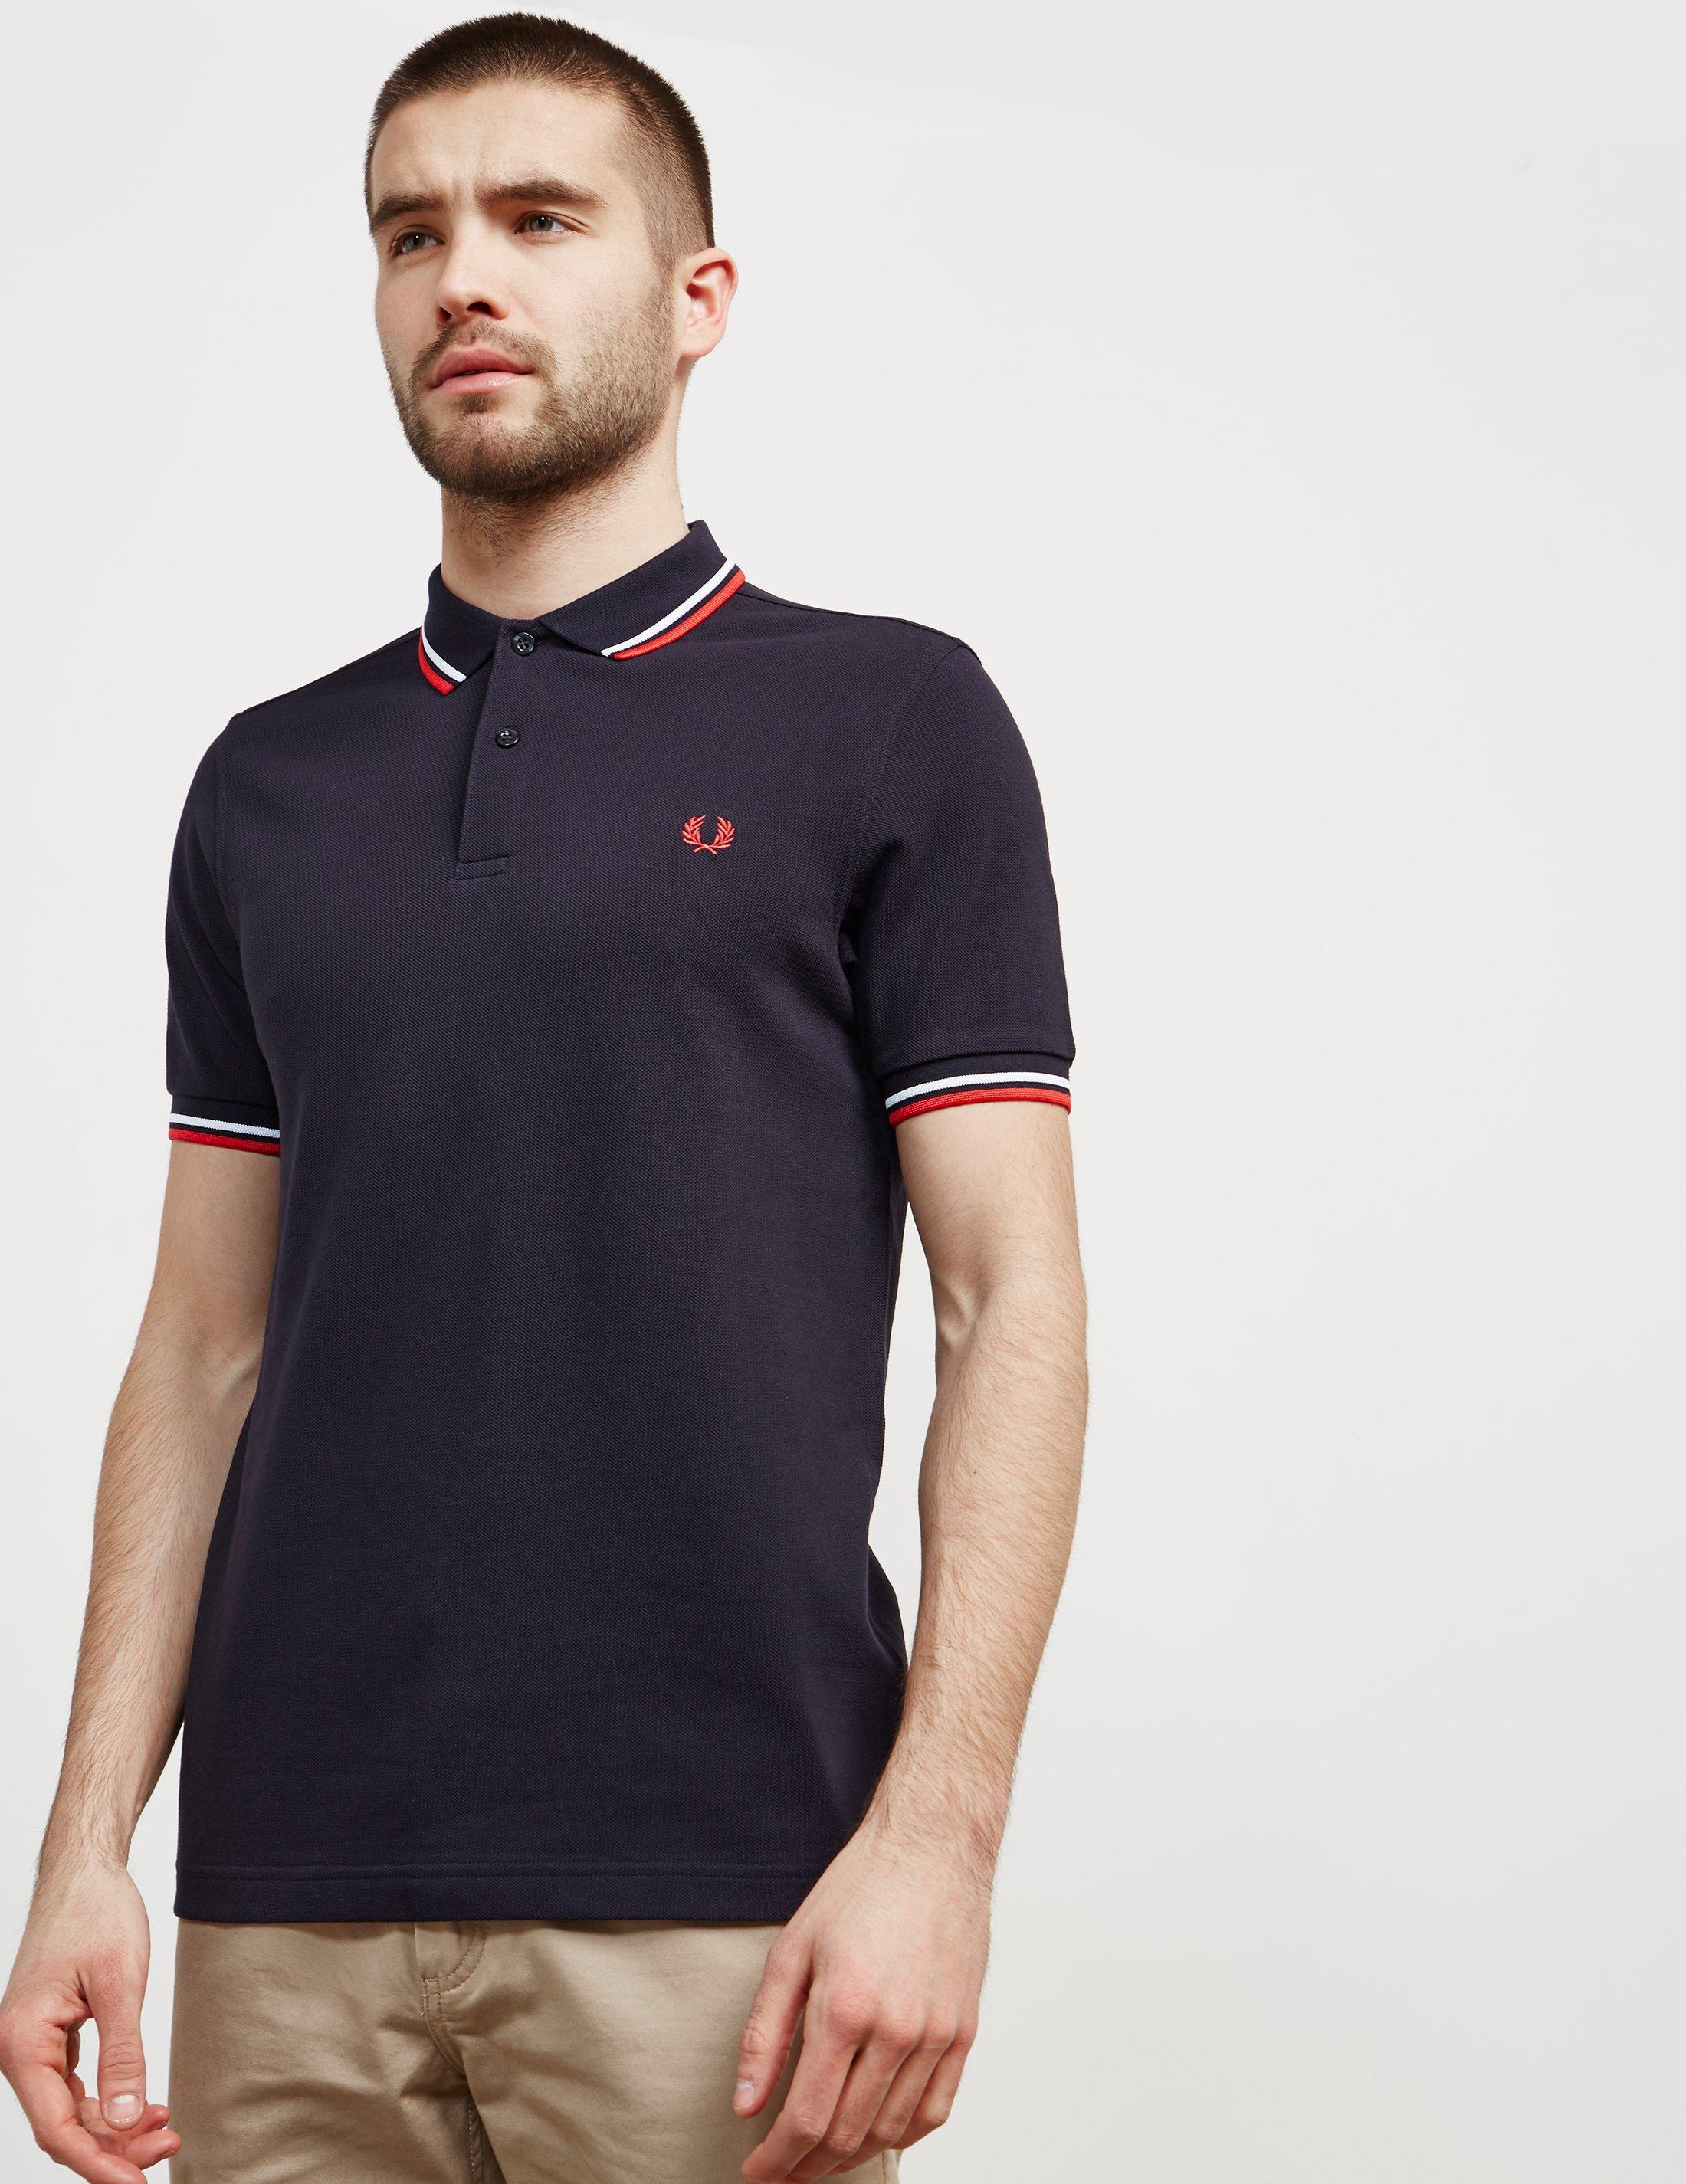 4b9295d83 Fred Perry Twin Tipped Short Sleeve Polo Shirt Dark Navy white red ...